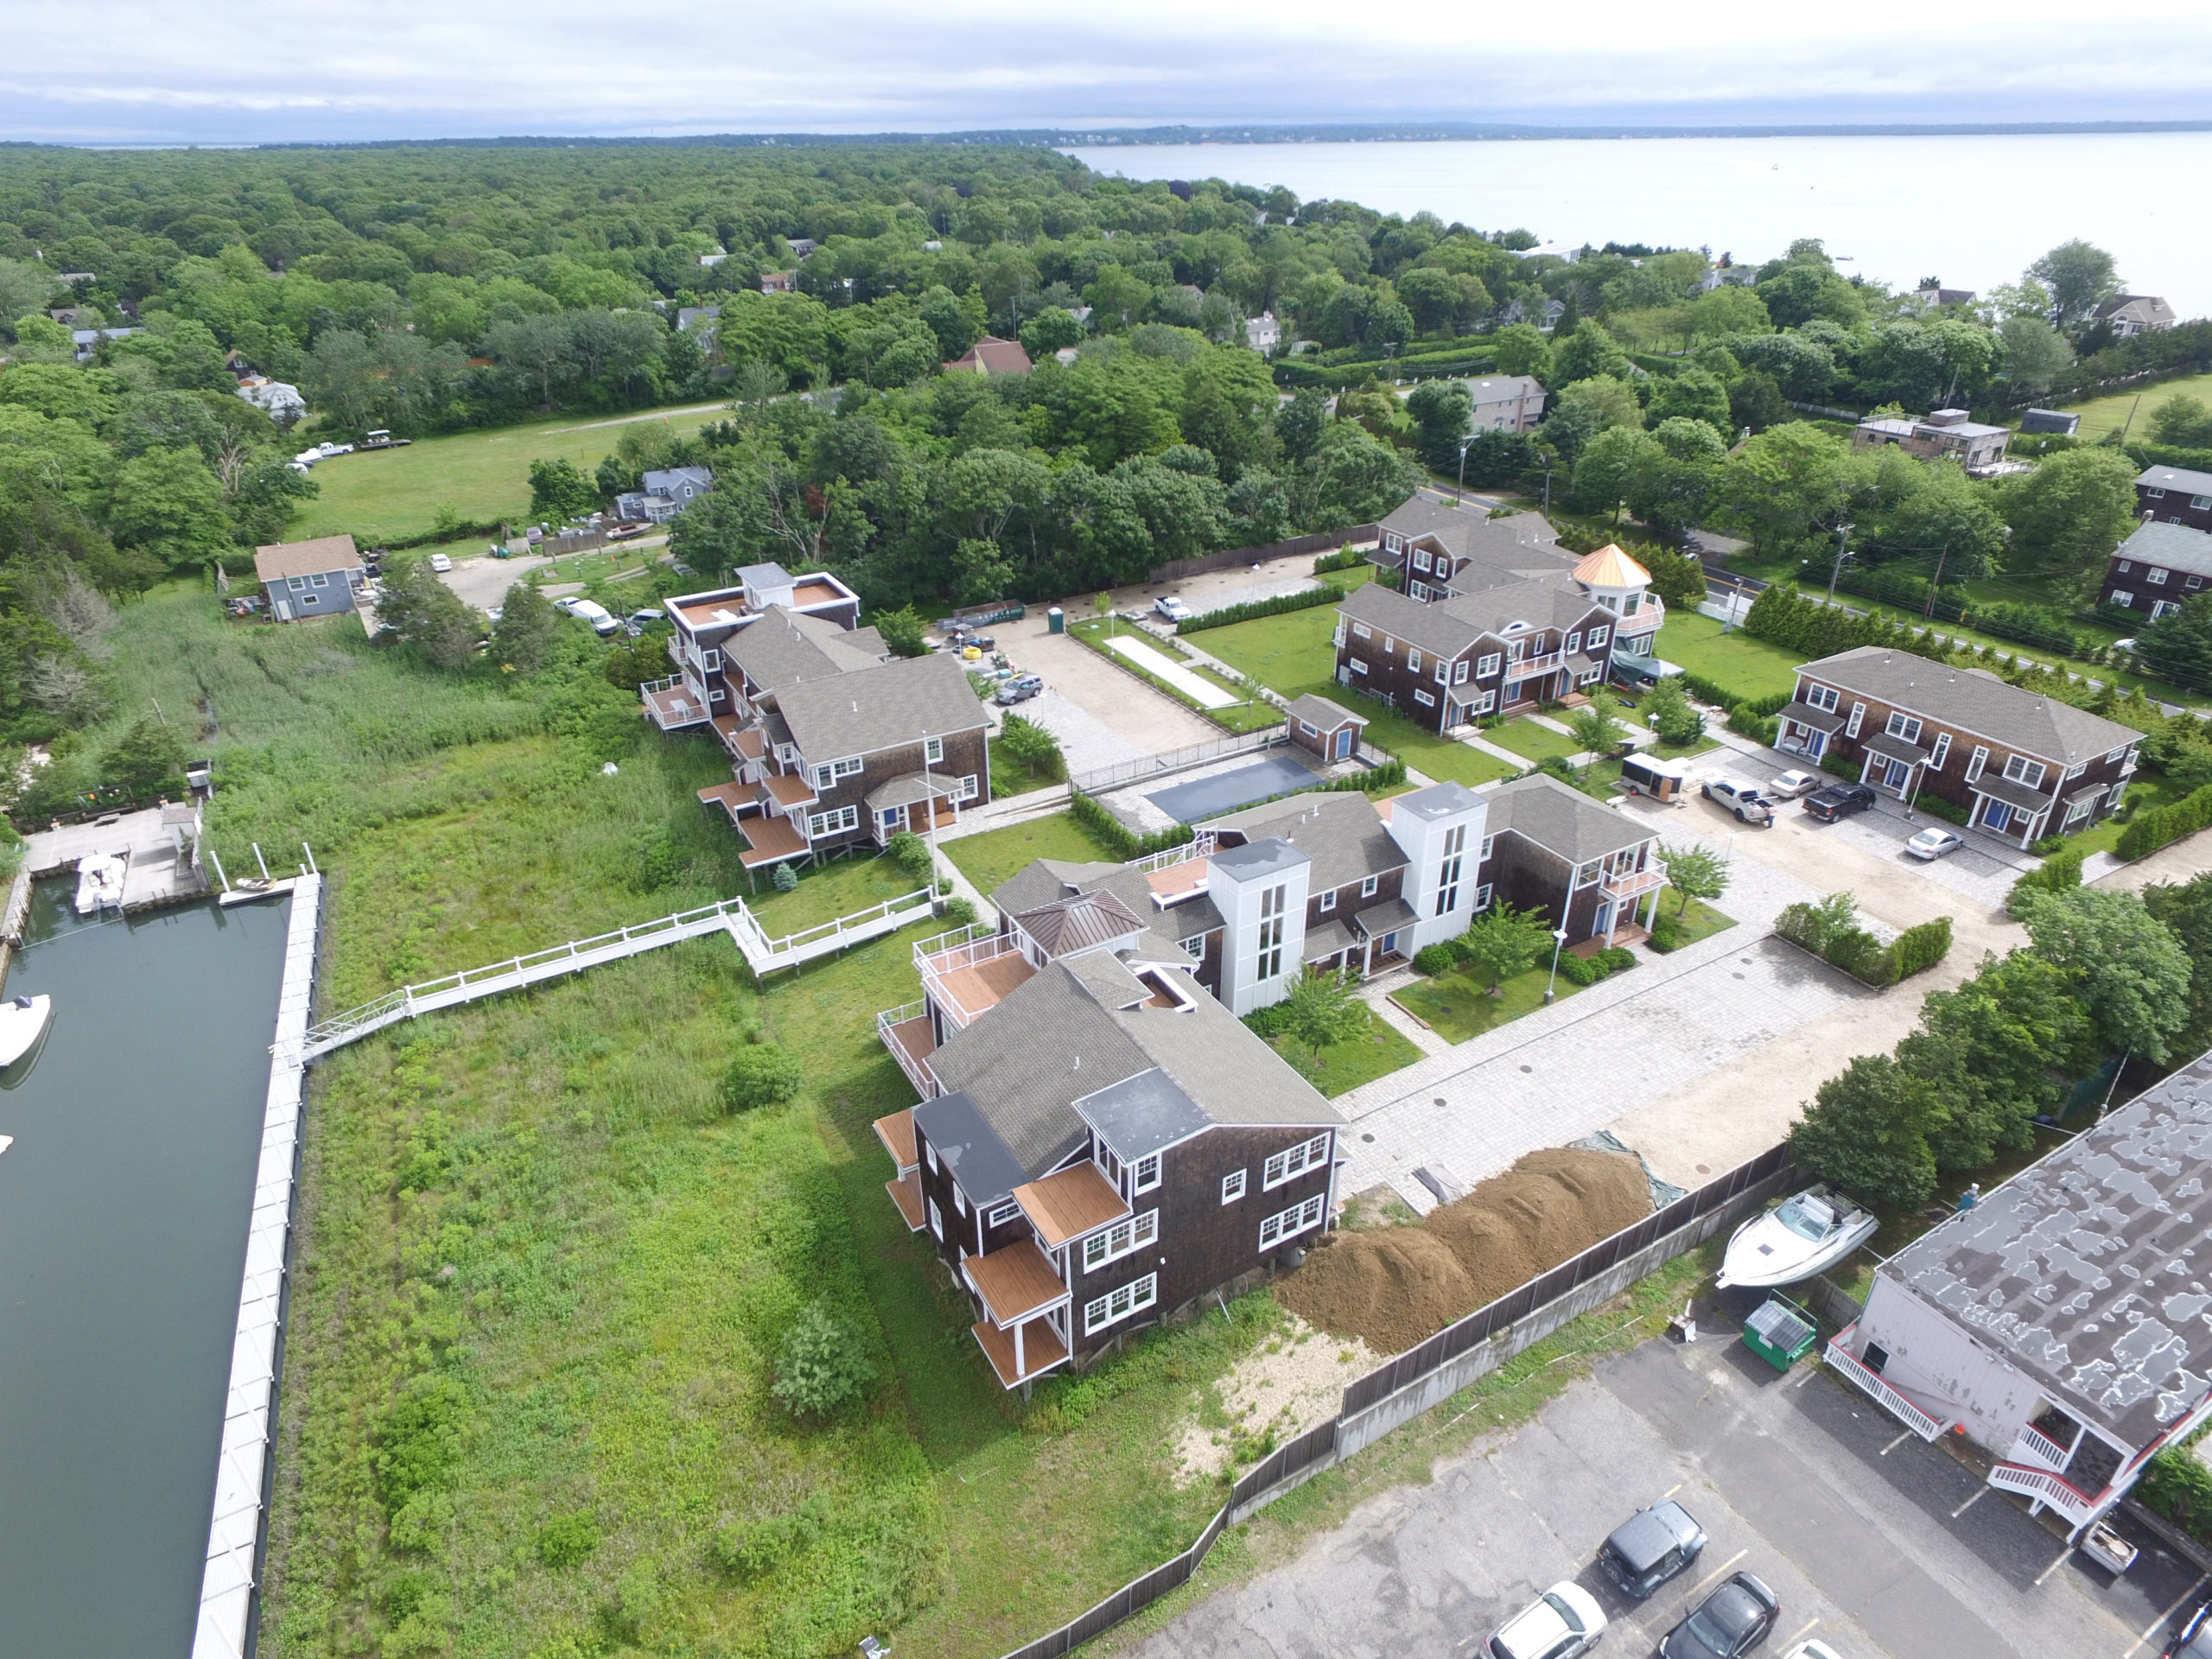 August 30 -- A court has ordered the sale of Ponquogue Point, the bankrupt condominium project on Foster Avenue in Hampton Bays that stalled when it was near completion. Ponquogue Point has sat mostly idle for a few years as the project has been caught up in legal battles. But now, with the court-ordered bankruptcy sale, a new owner could soon step in to finish the development, and residents could start moving in shortly thereafter. Meridian InvestmentSales, a New York City real estate firm, is marketing Ponquogue Point after the court approved the firm in a July 23 order.